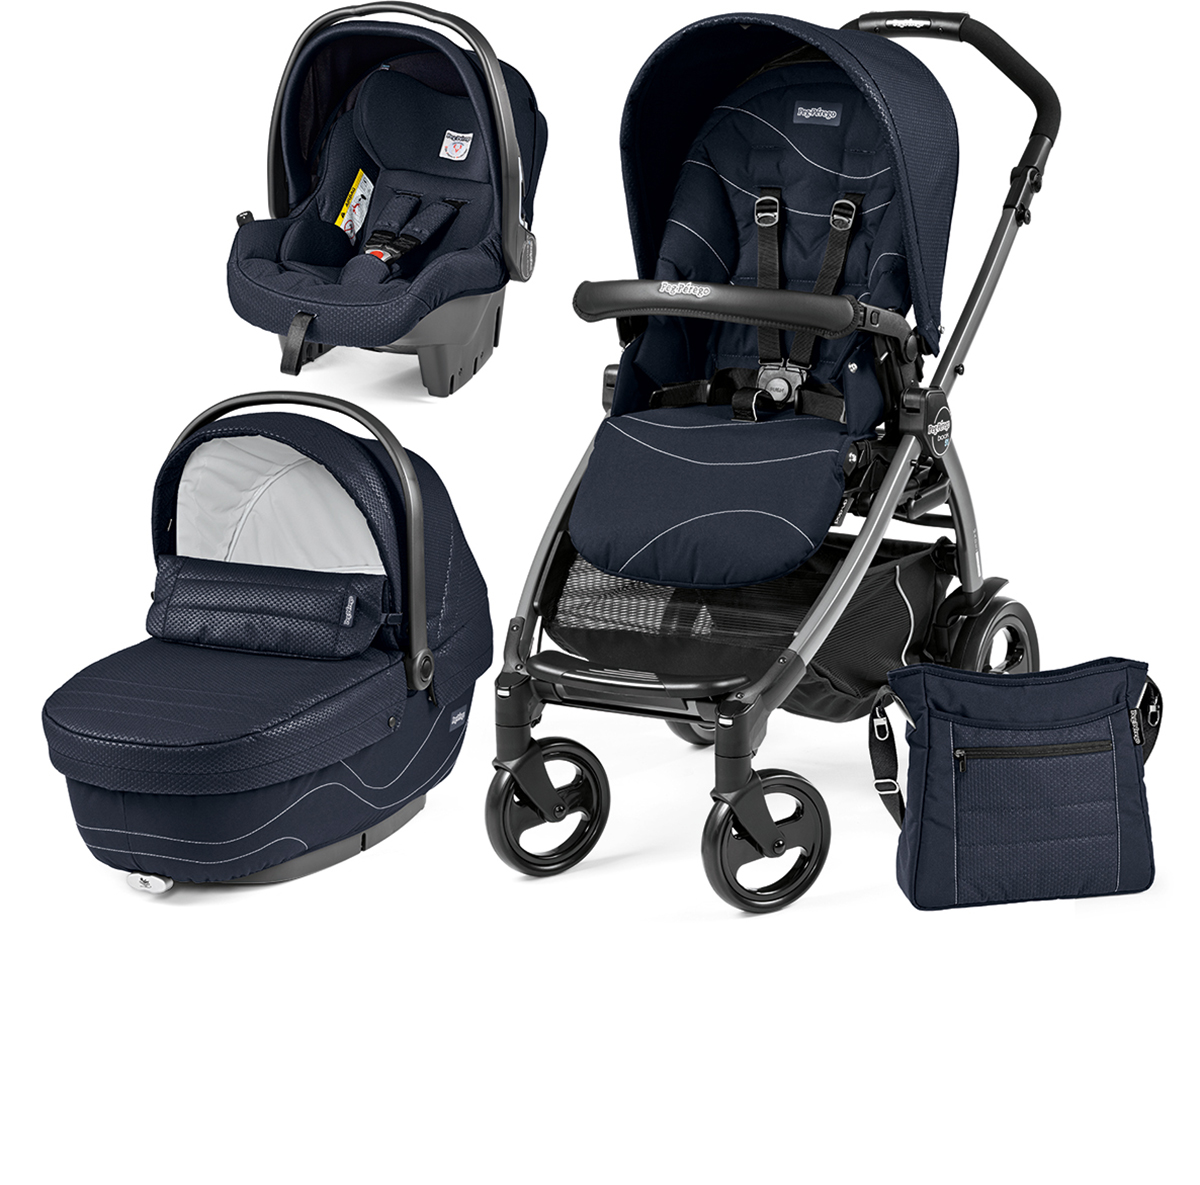 hr_2017_09_01_peg_perego_bloom_navy.jpg